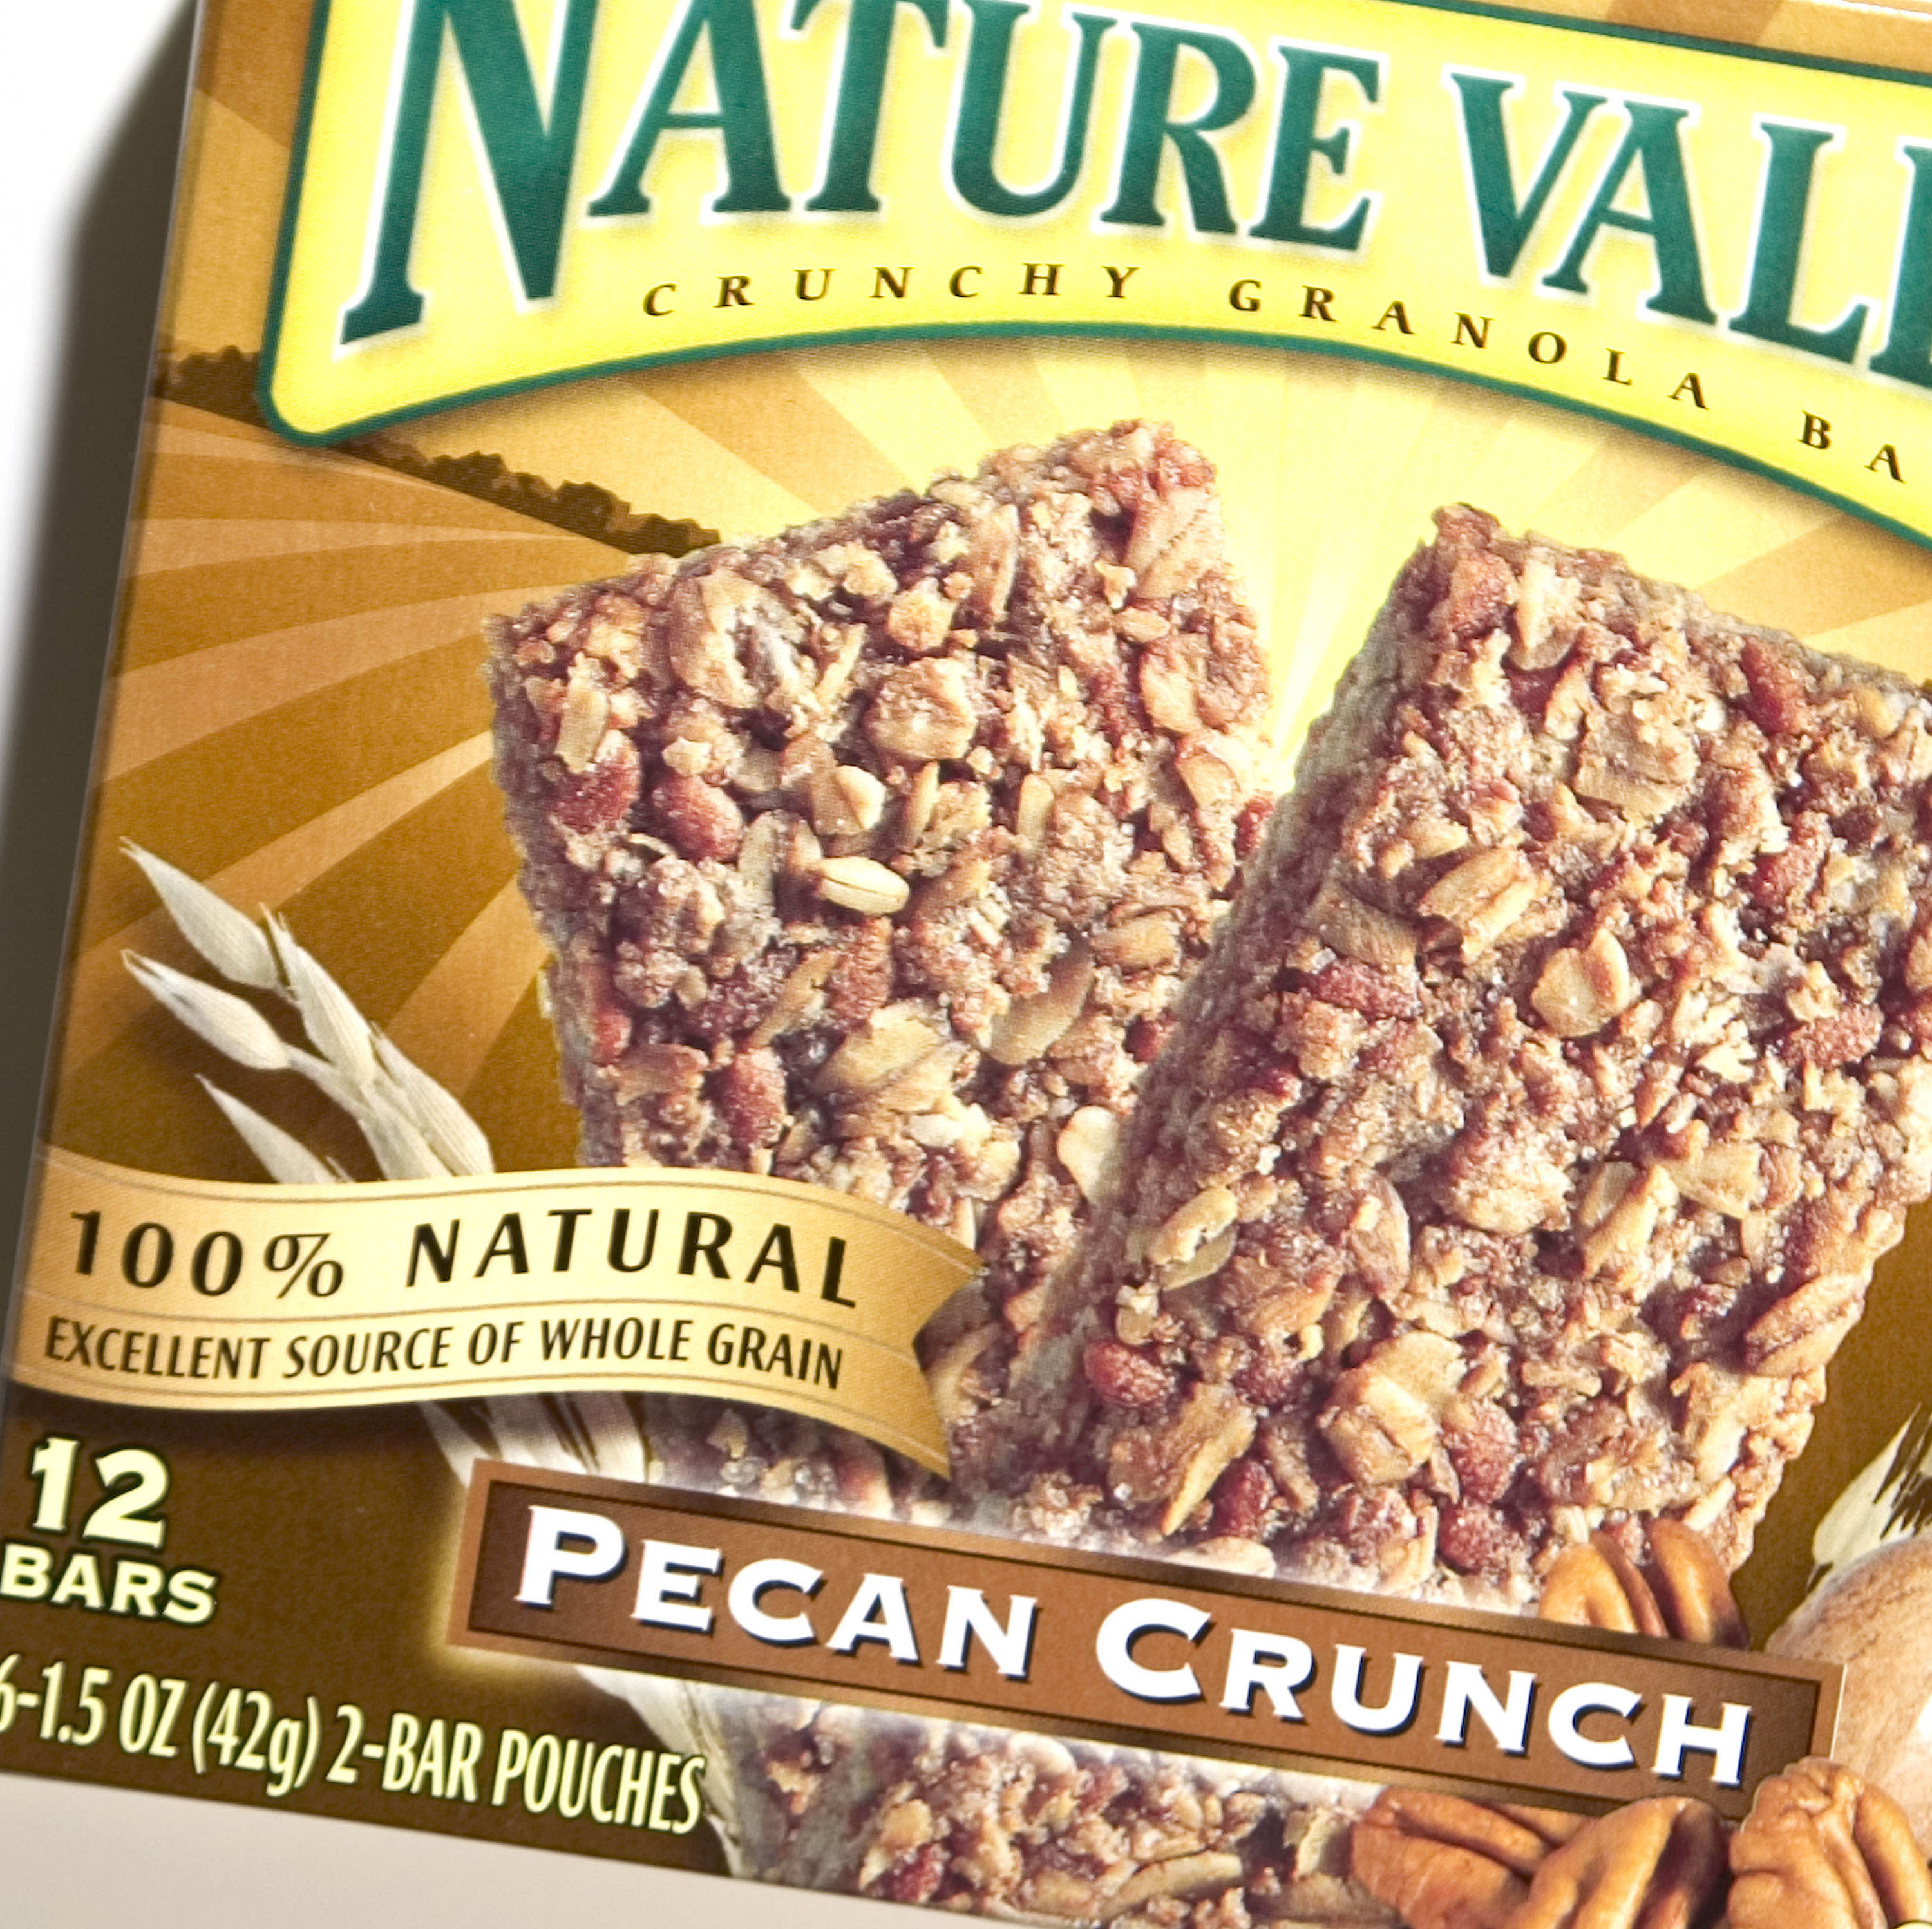 General Mills uses high-fructose corn syrup in its Nature Va